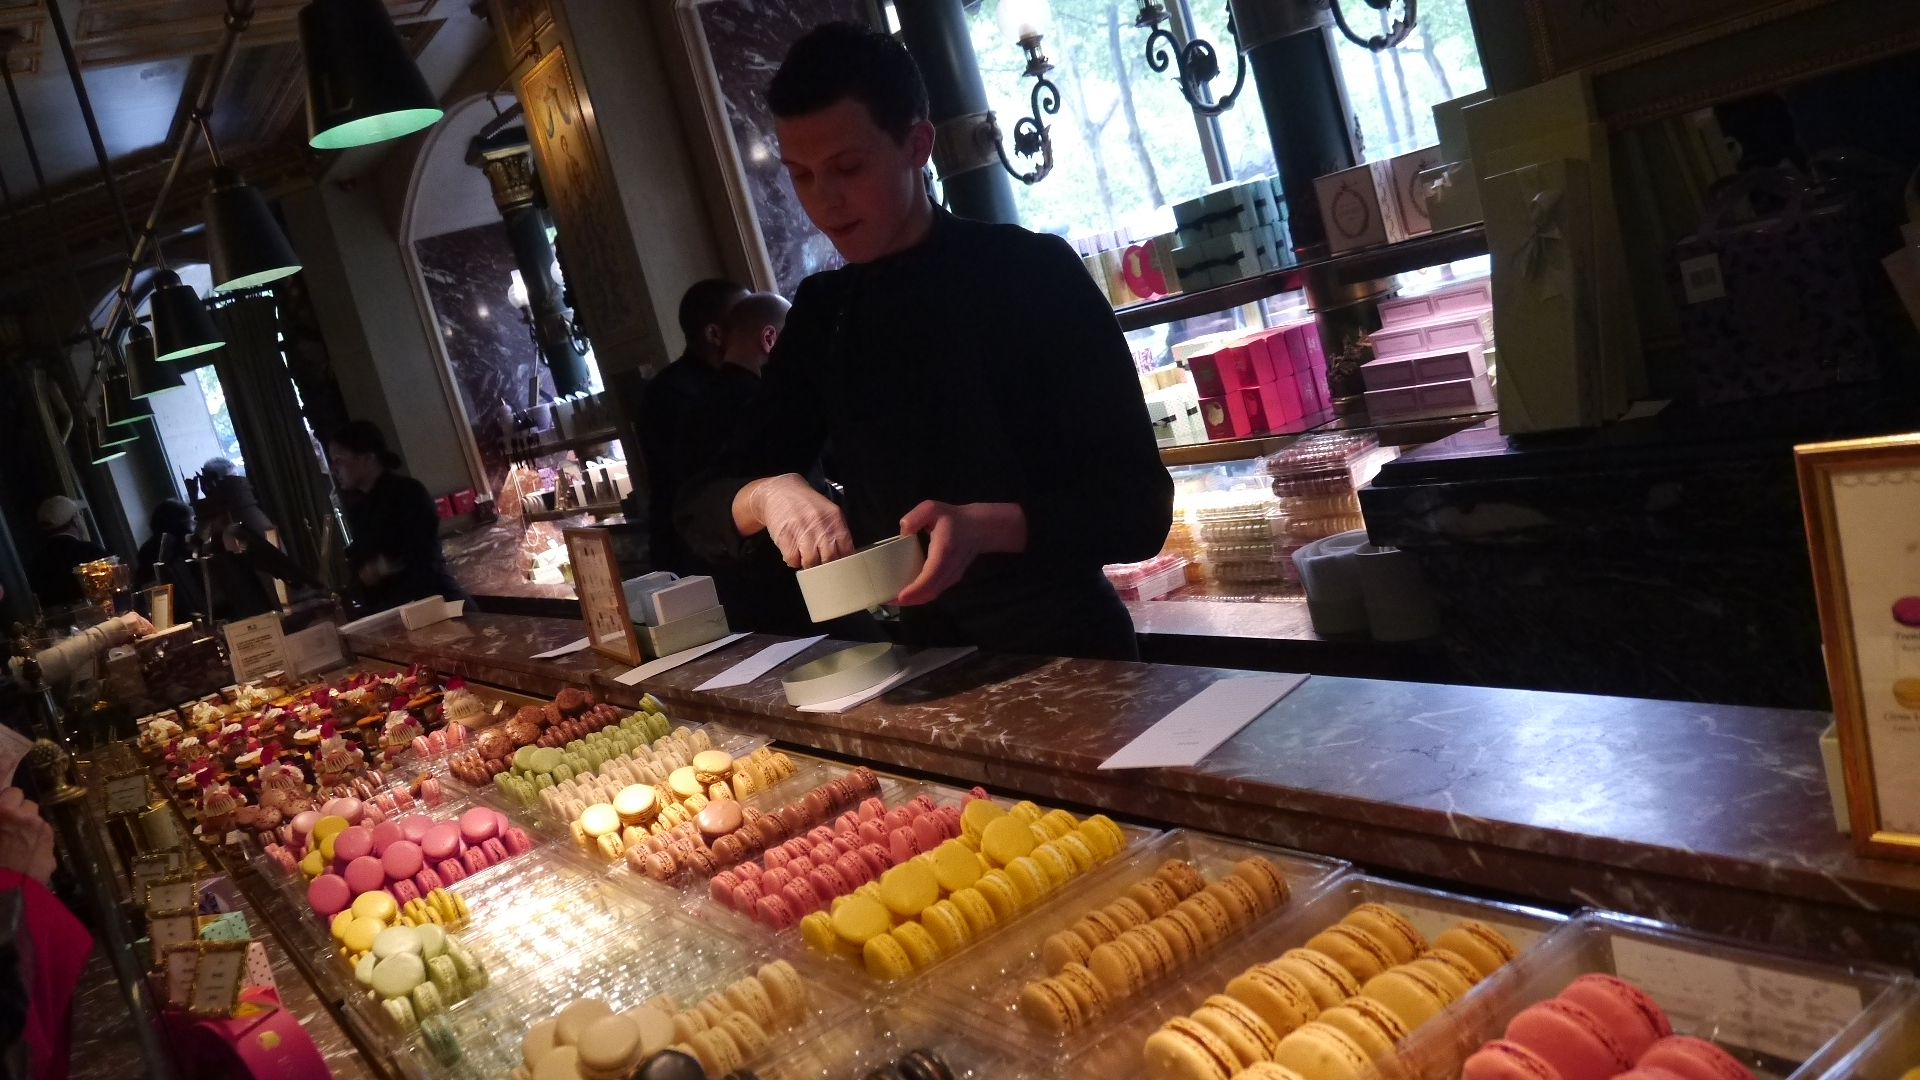 We were luckily a few steps away from dessert - Laduree in Champs Elysee